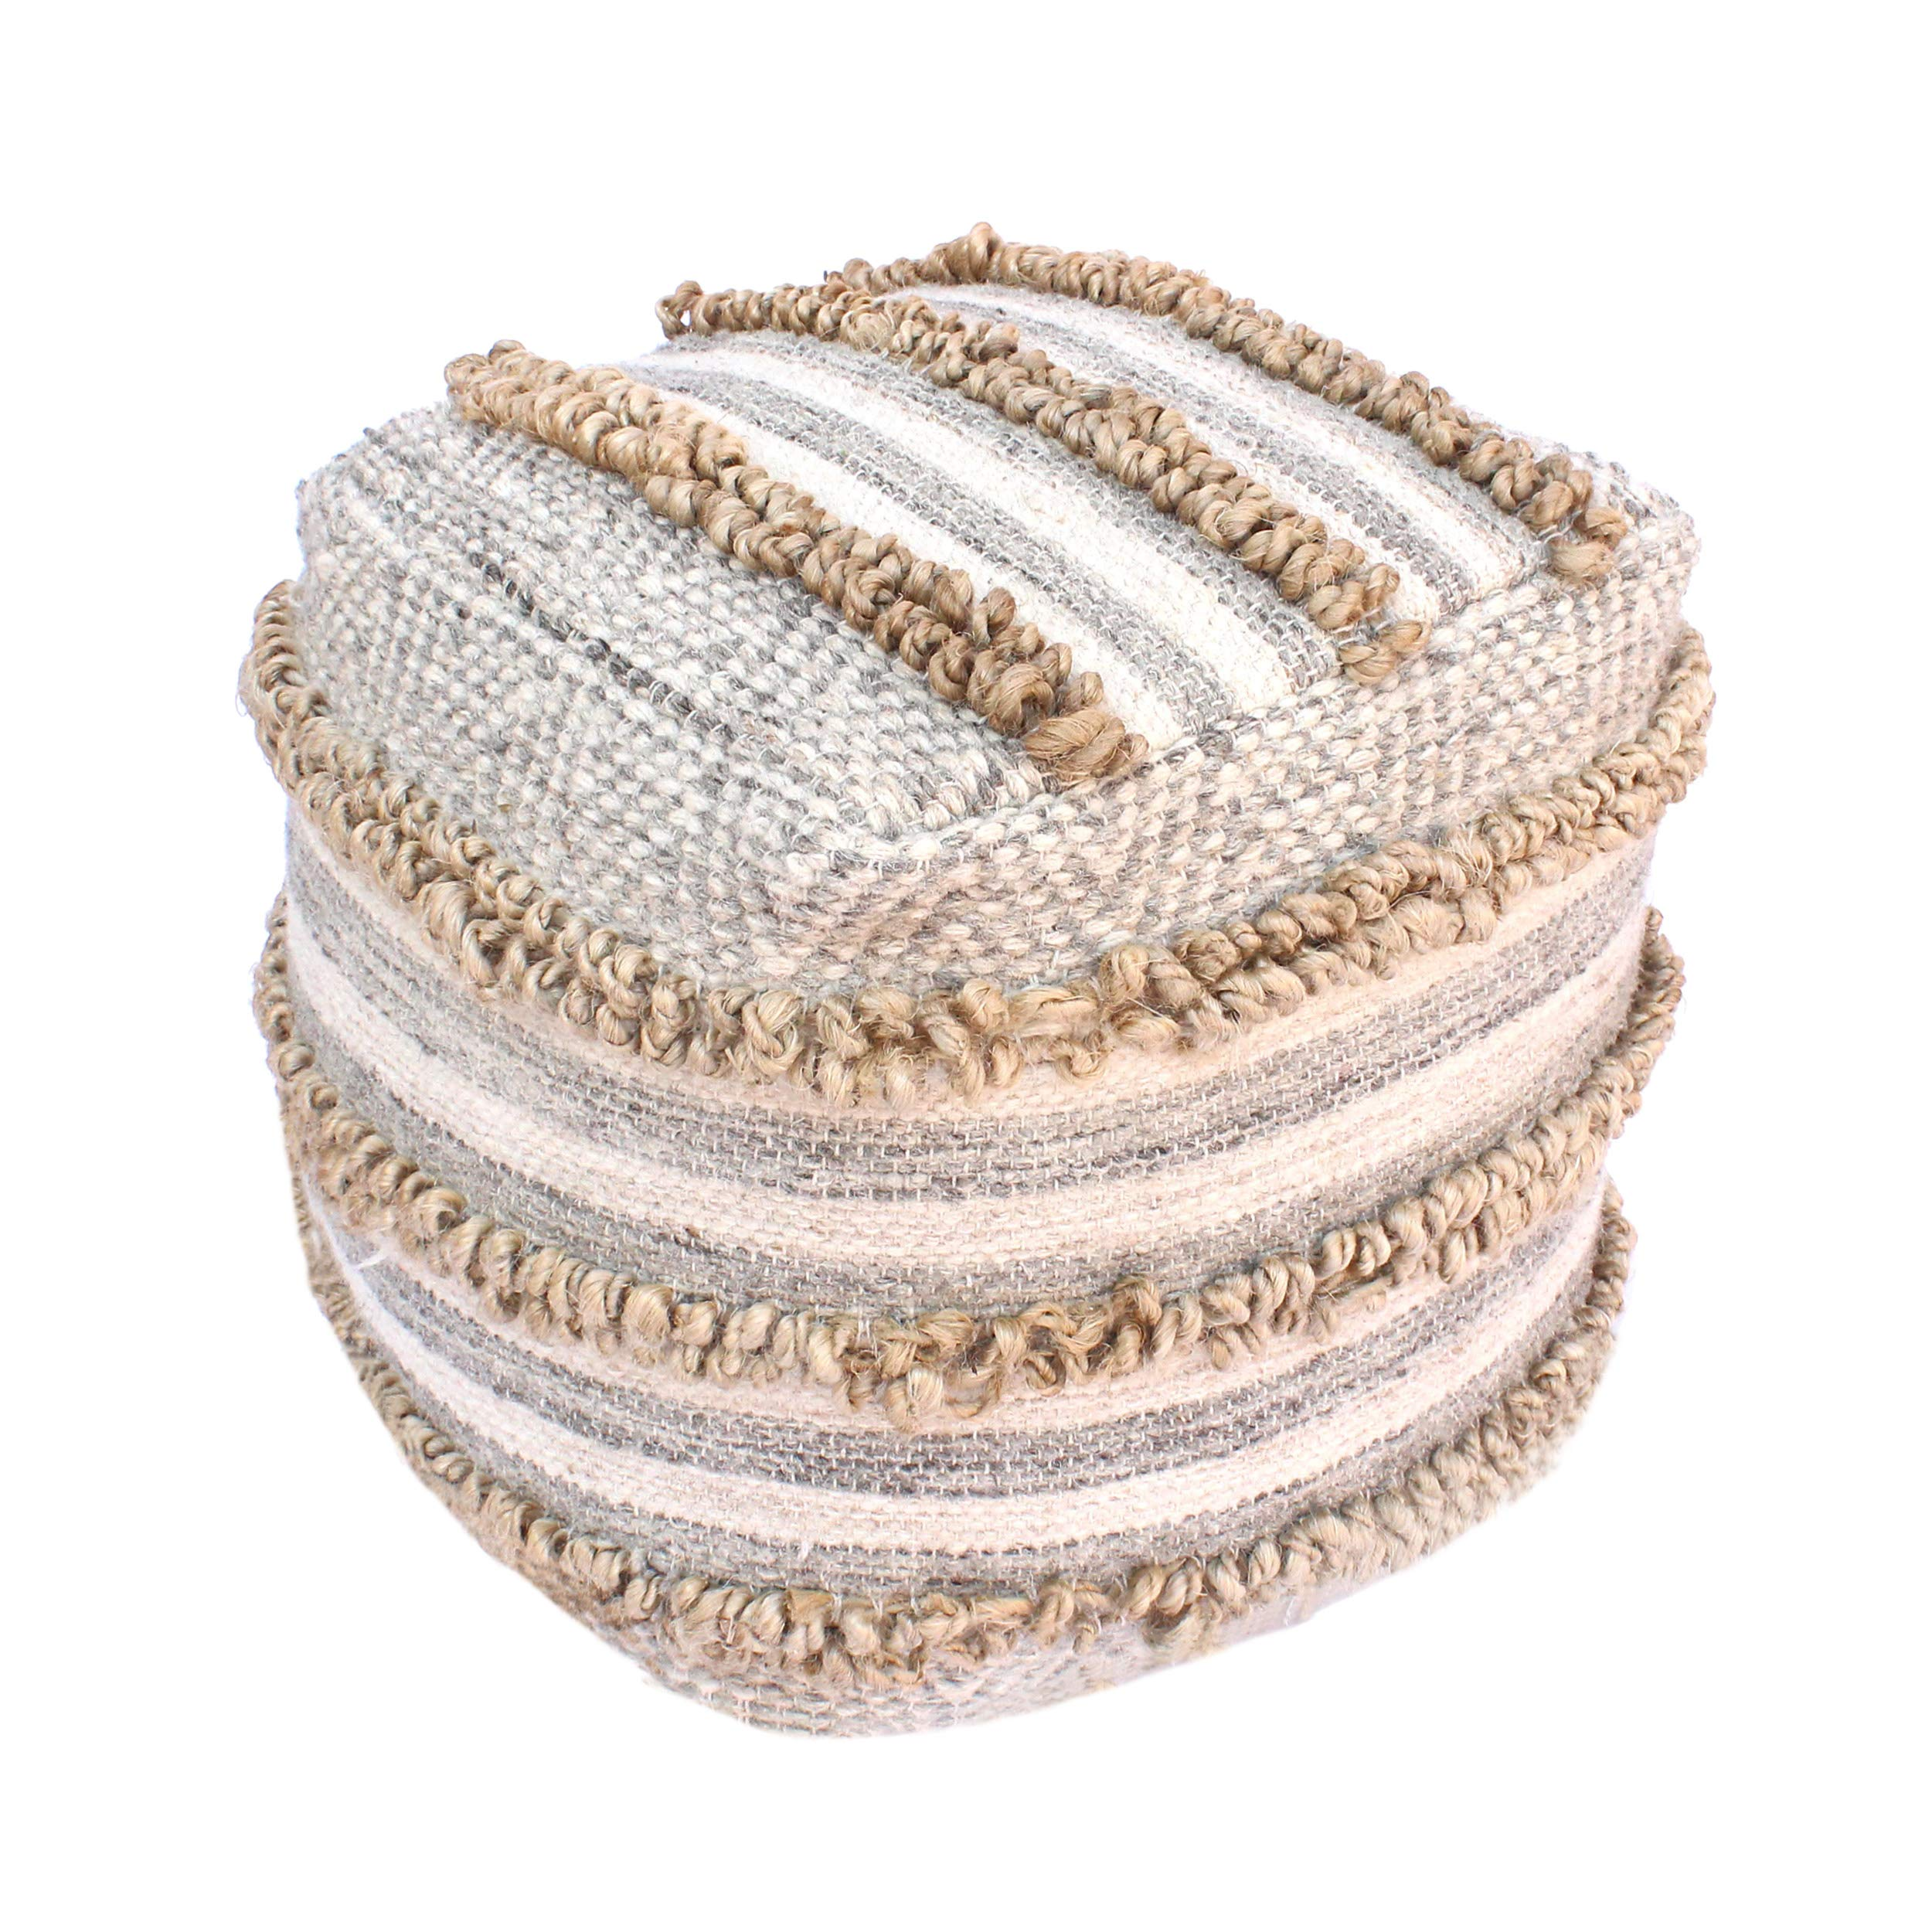 Great Deal Furniture Gladys Contemporary Hemp, Wool and Cotton Pouf Ottoman, Natural and Gray by Great Deal Furniture